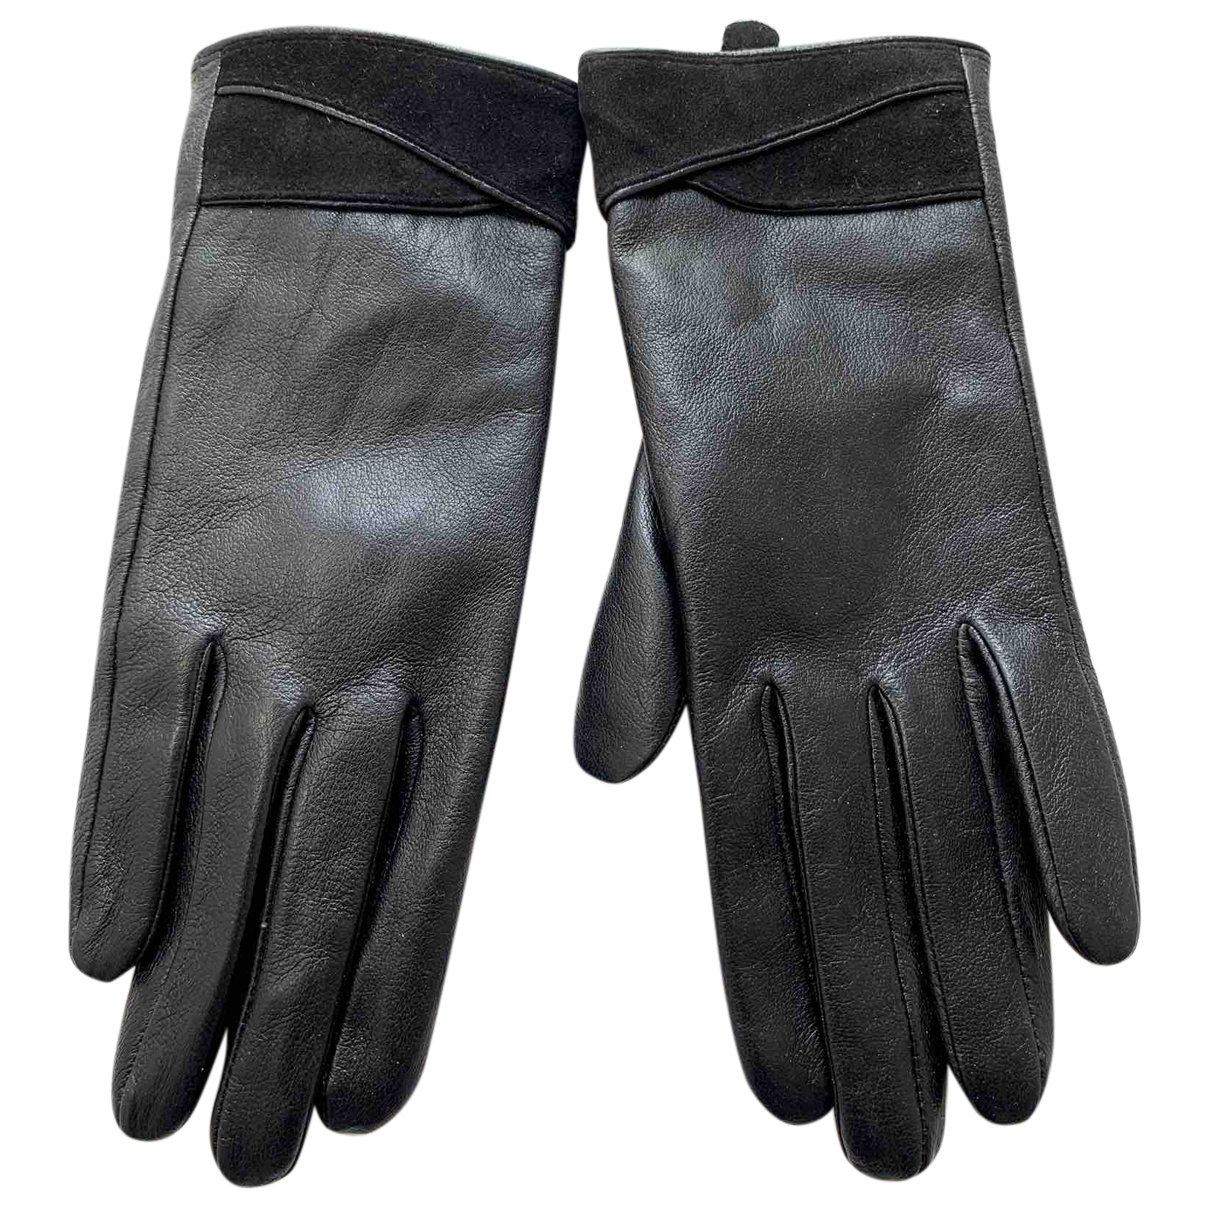 Non Signé / Unsigned N Black Leather Gloves for Women 7.5 Inches